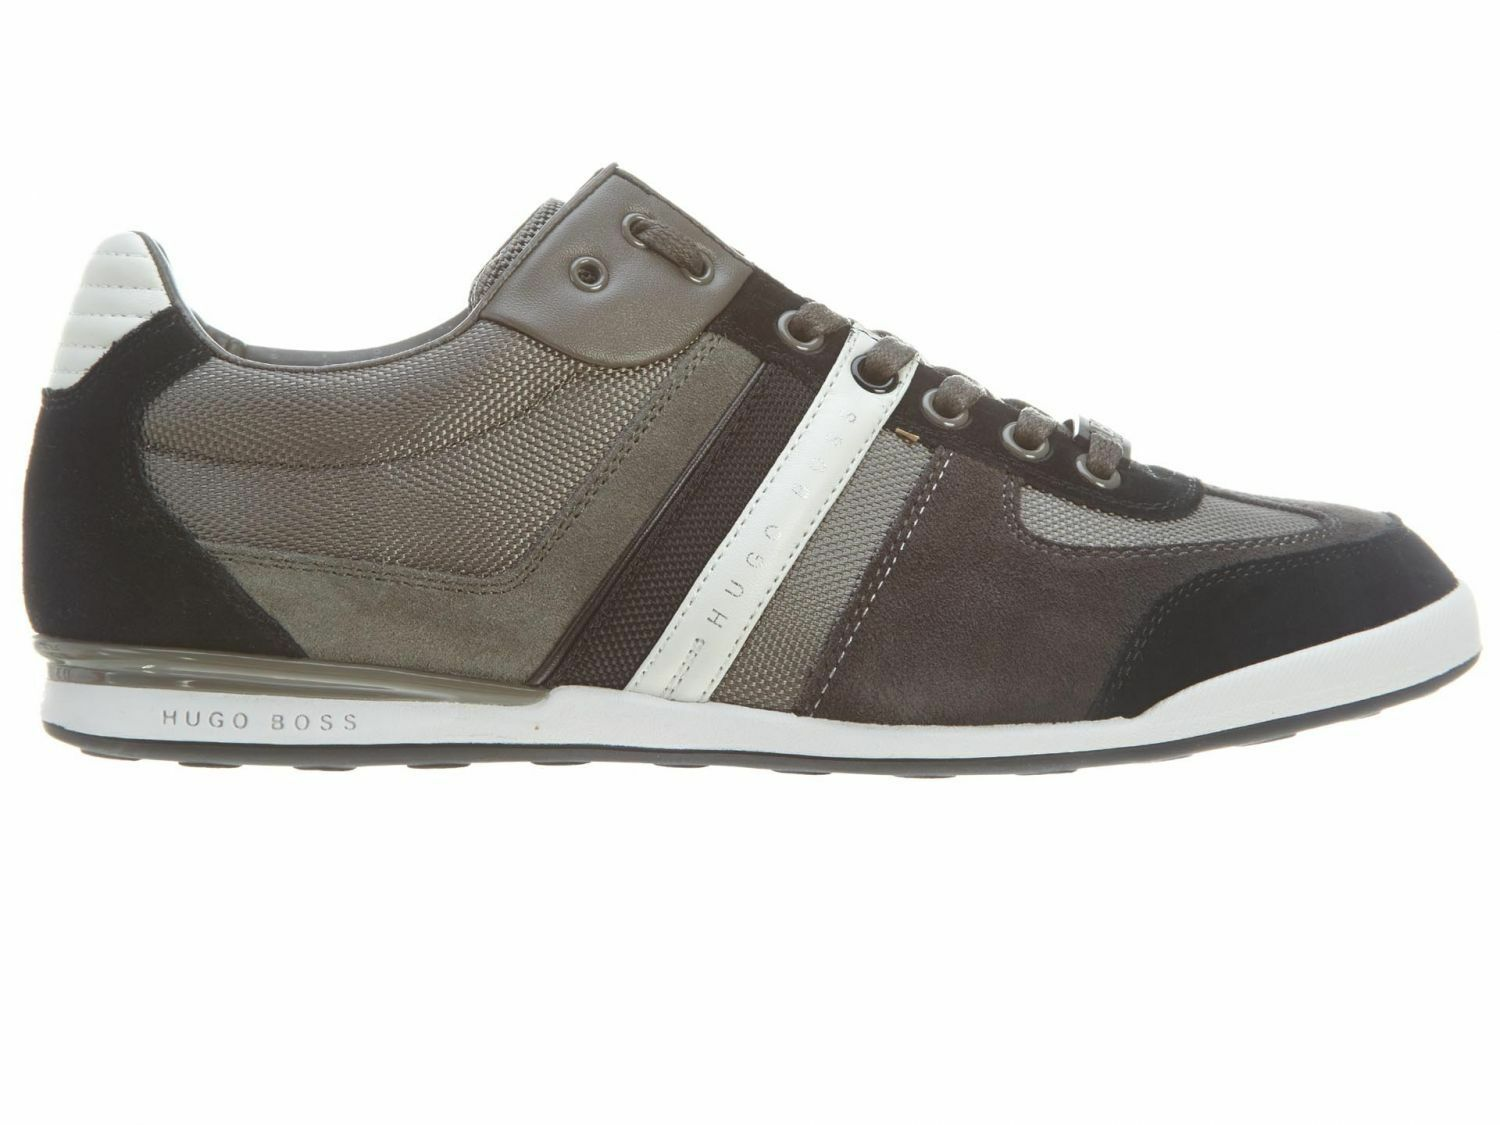 Hugo Boss Akeen Mens 50247604-030 Grey Nylon Suede Shoes Casual Sneakers Size 13